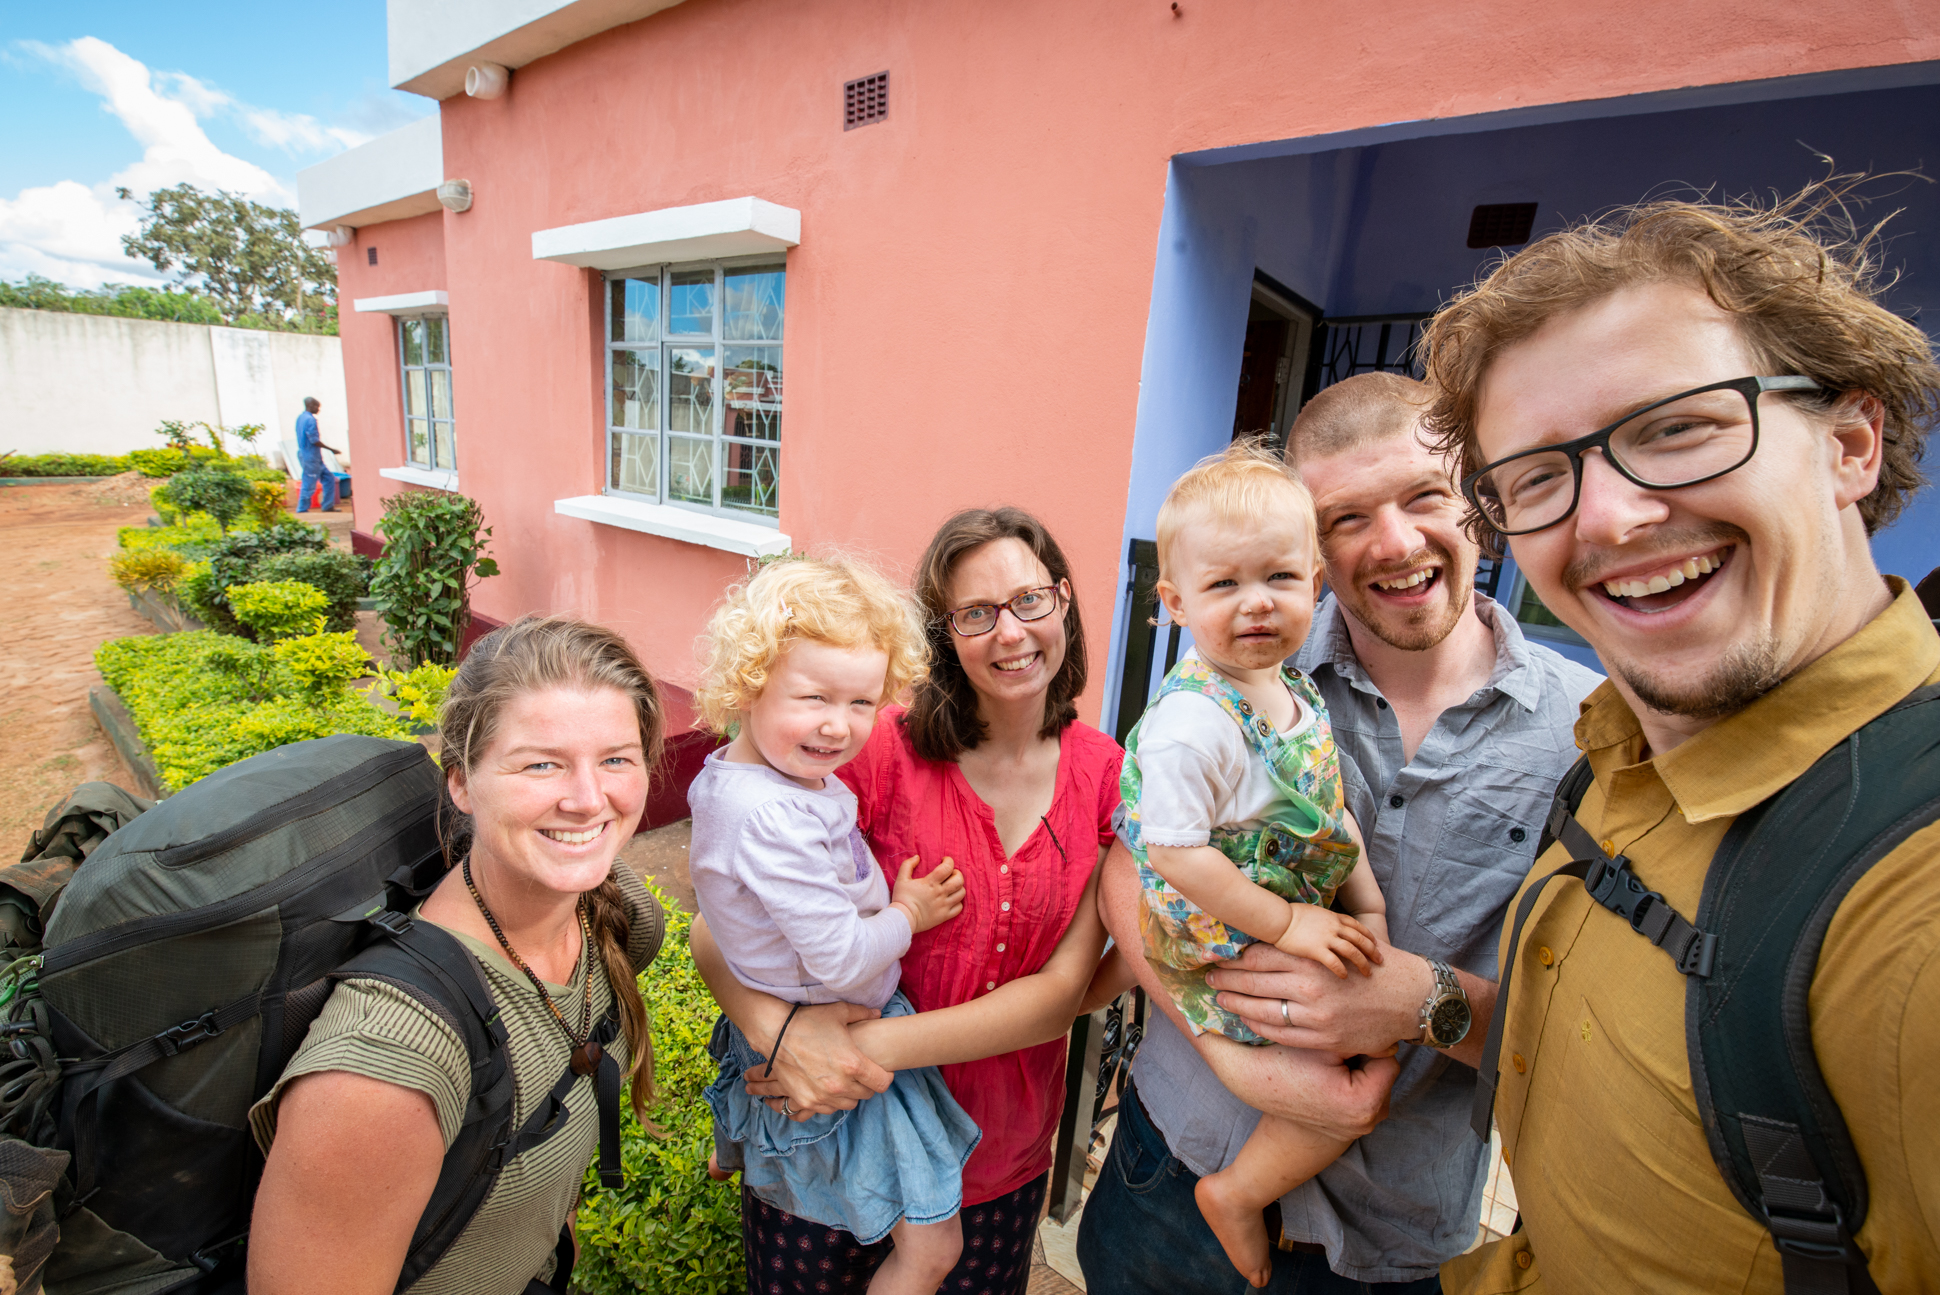 Ellis and me with a family with two kids in Mozambique.